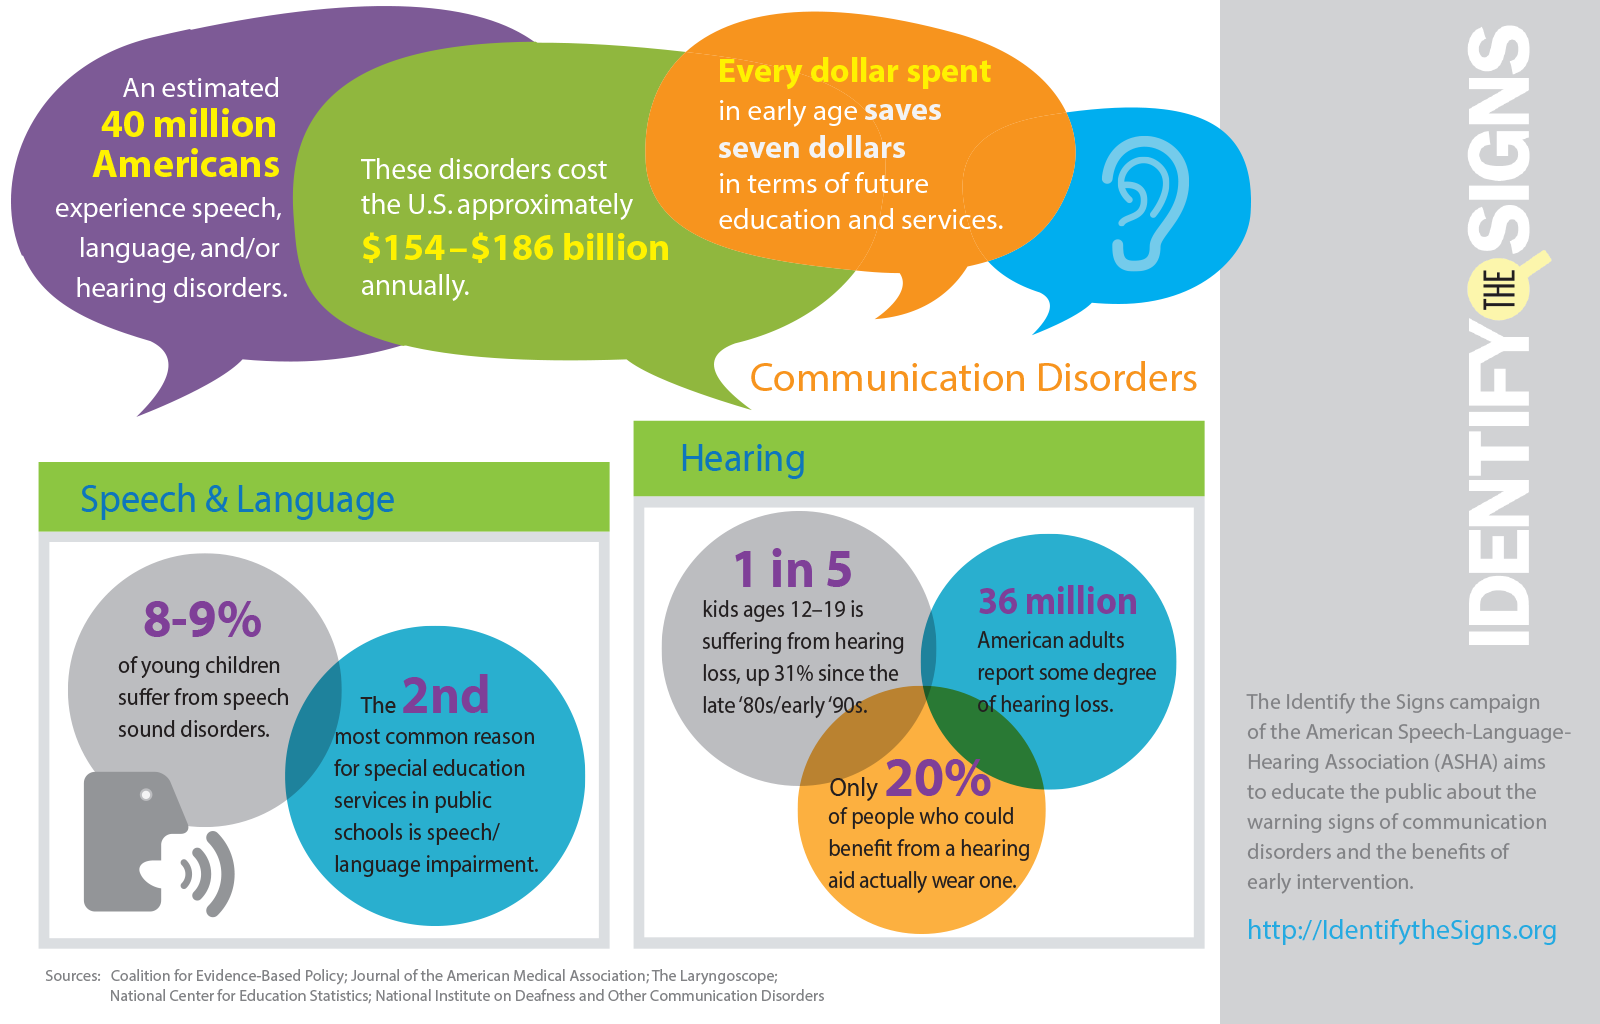 New BHSM infographic: An estimated 40 million Americans experience ...